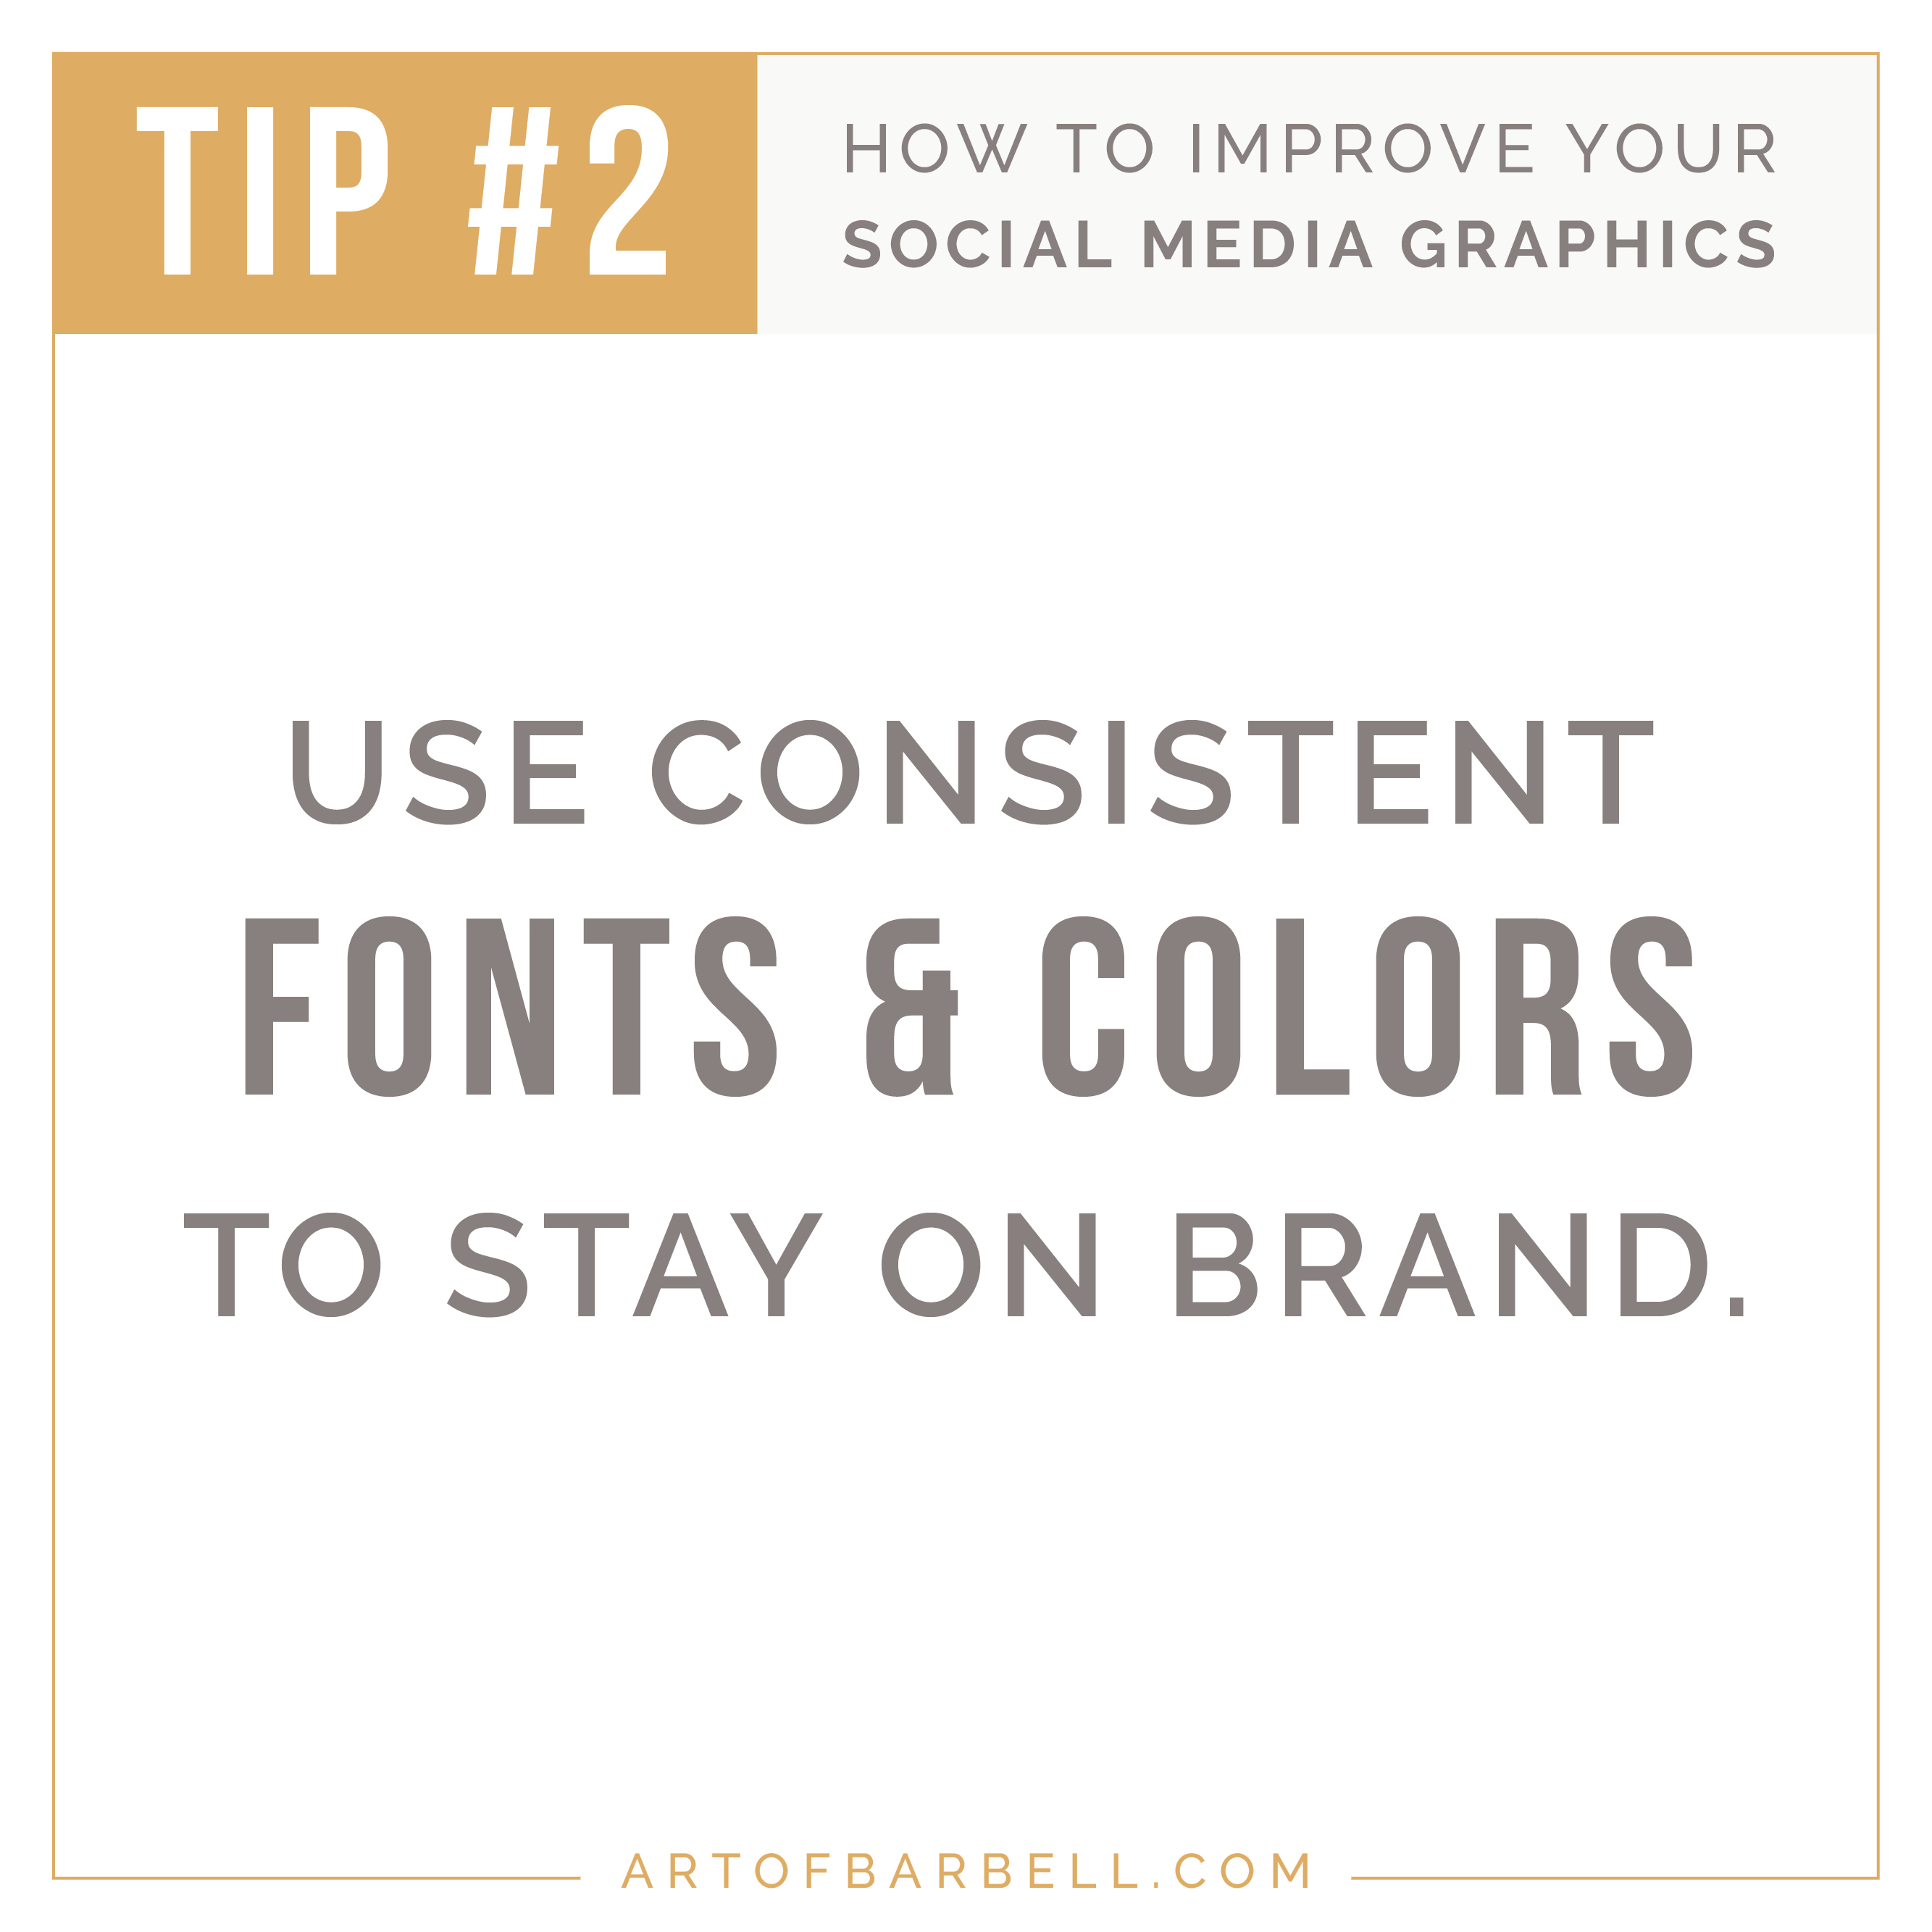 Tip # 2 on How to Improve Your Instagram Graphics - Use Consistent Fonts and Colors for Brand Recognition